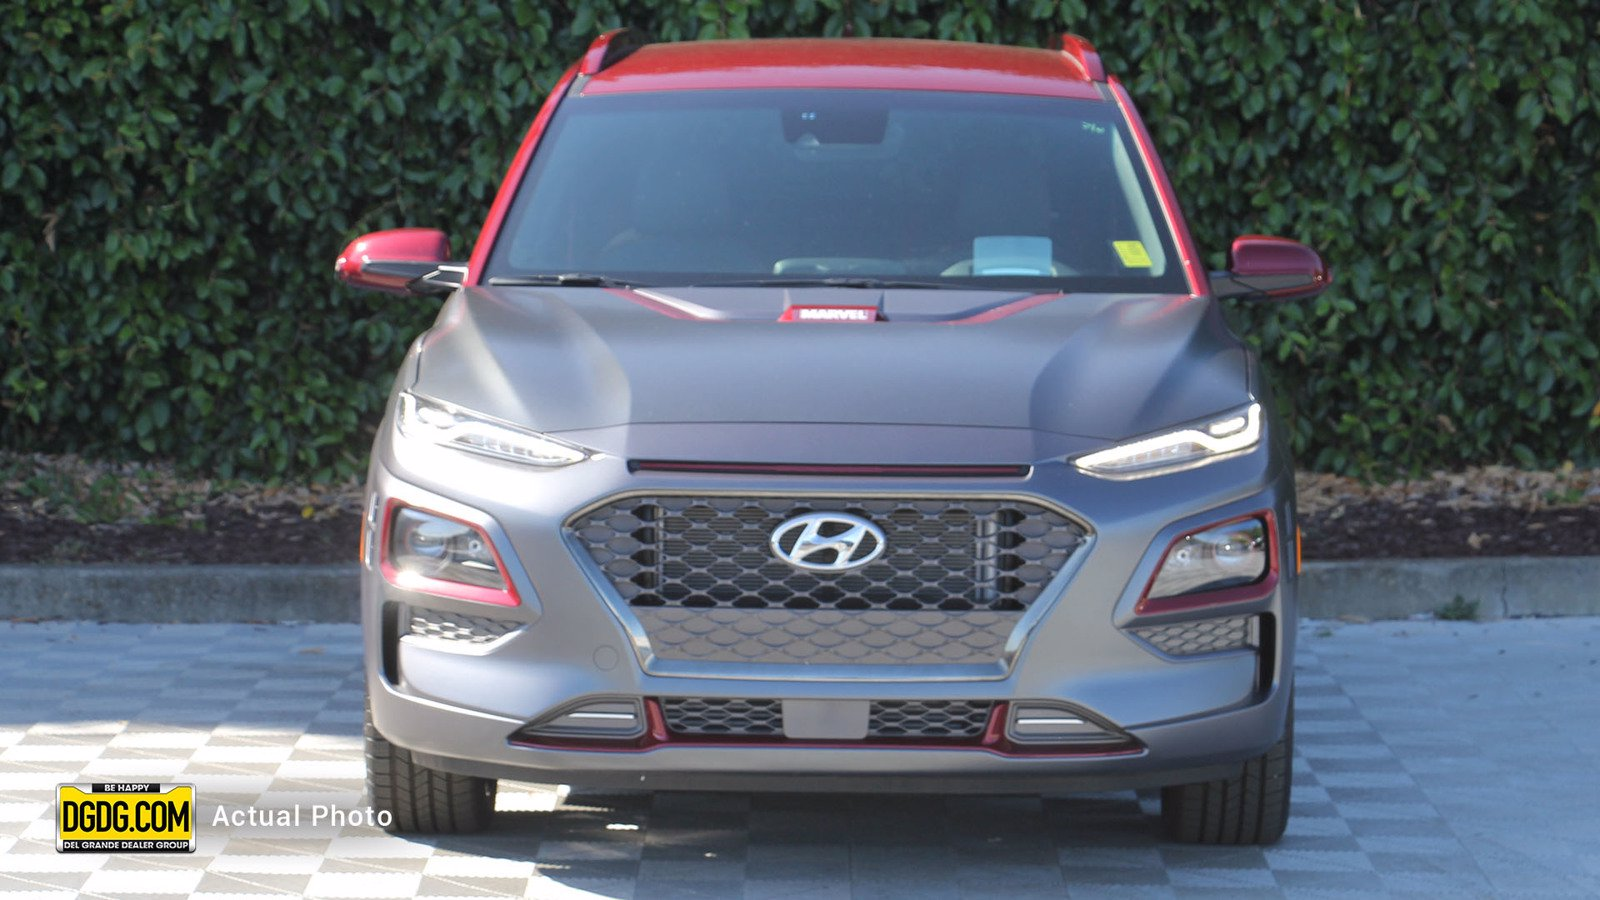 Pre-Owned 2019 Hyundai Kona Iron Man